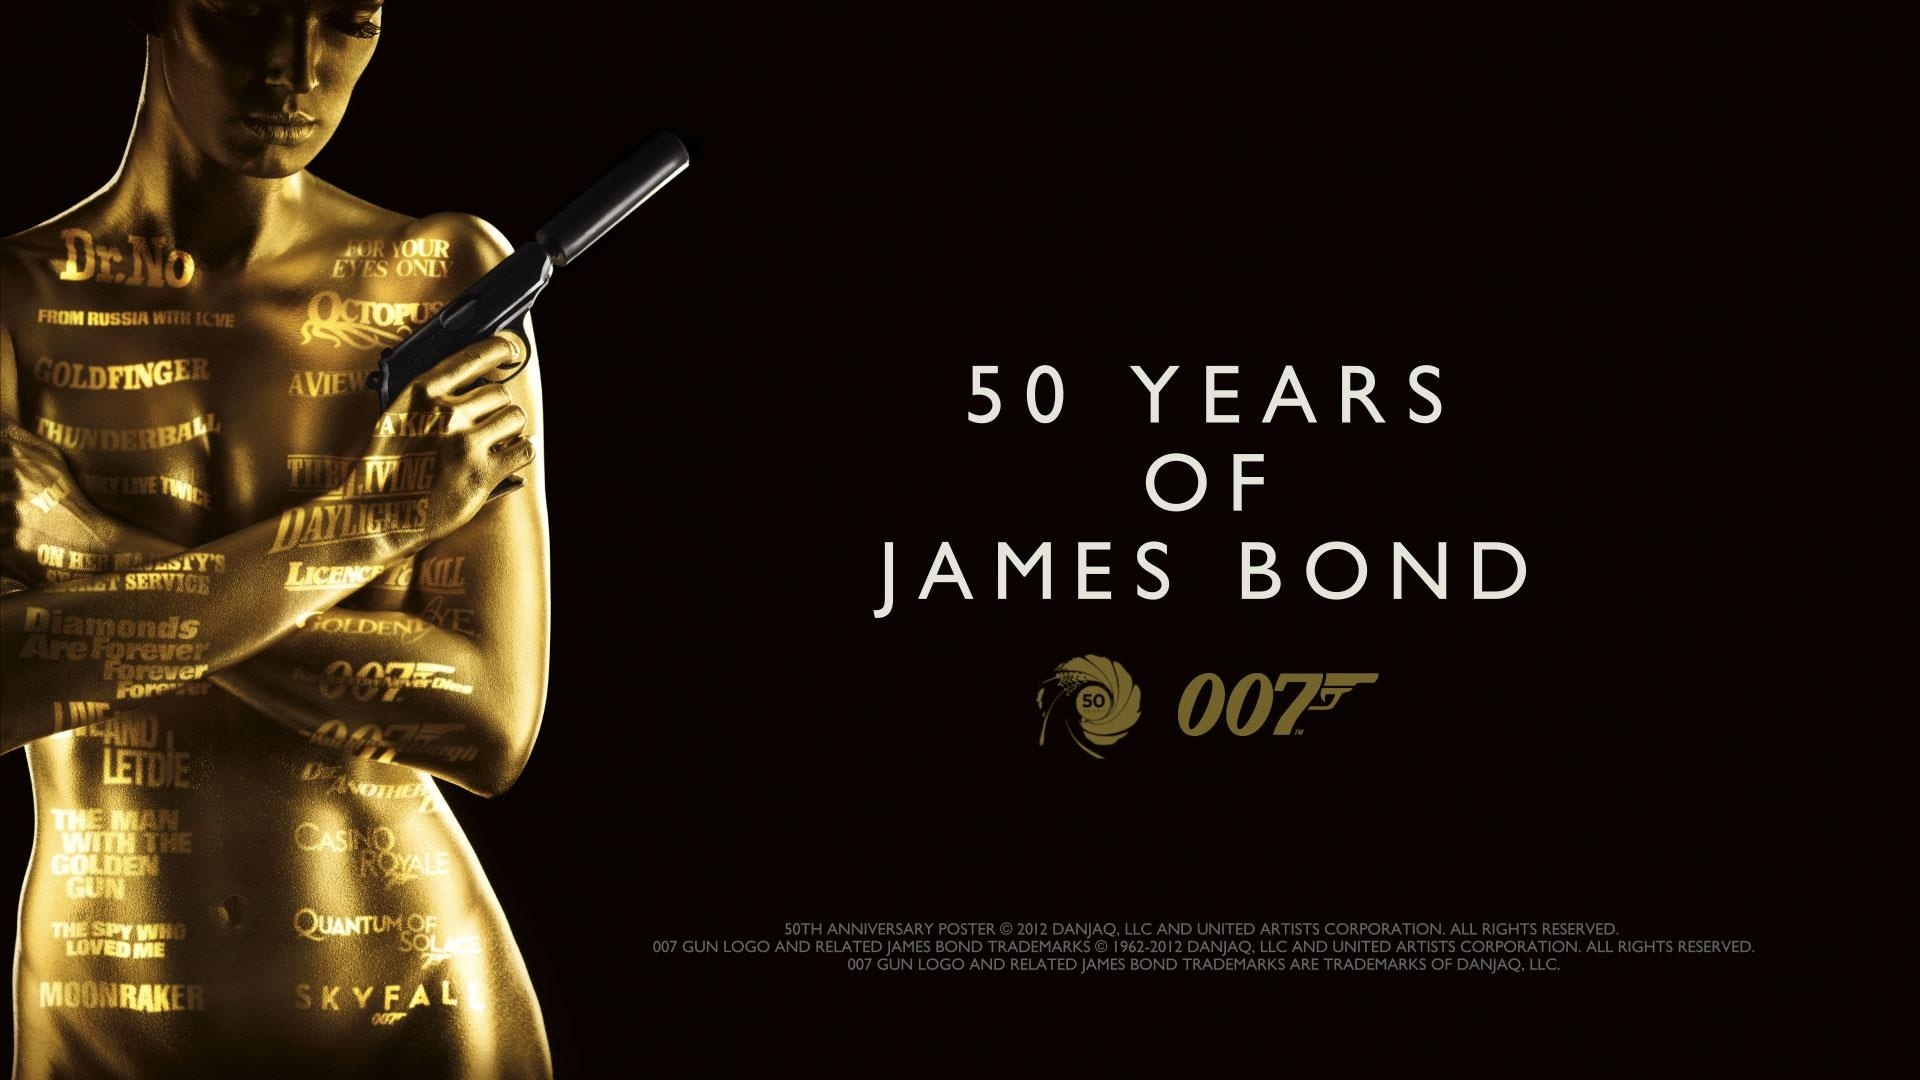 50 years of james bond 007 wallpaper 1920x1080 1080p 1920x1080